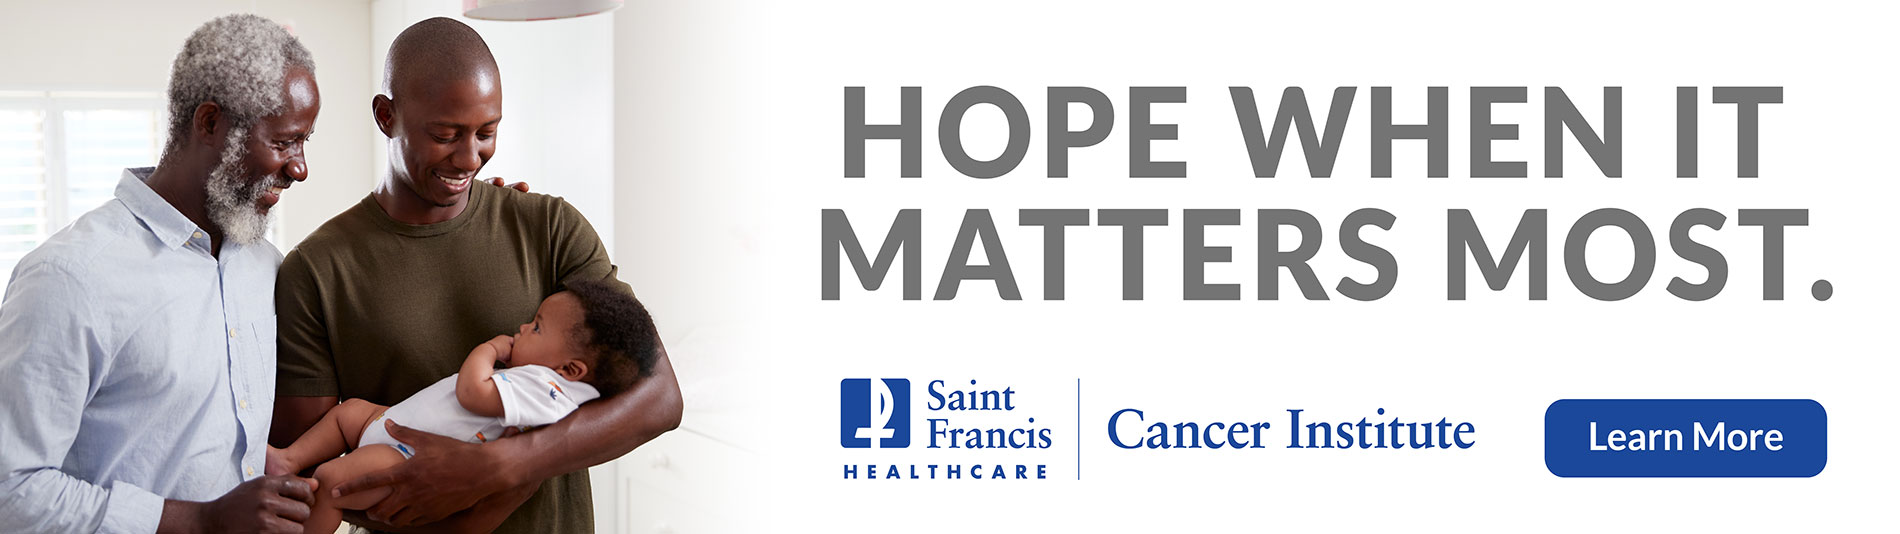 Cancer Institute - Hope When it Matters Most. Click to learn more.